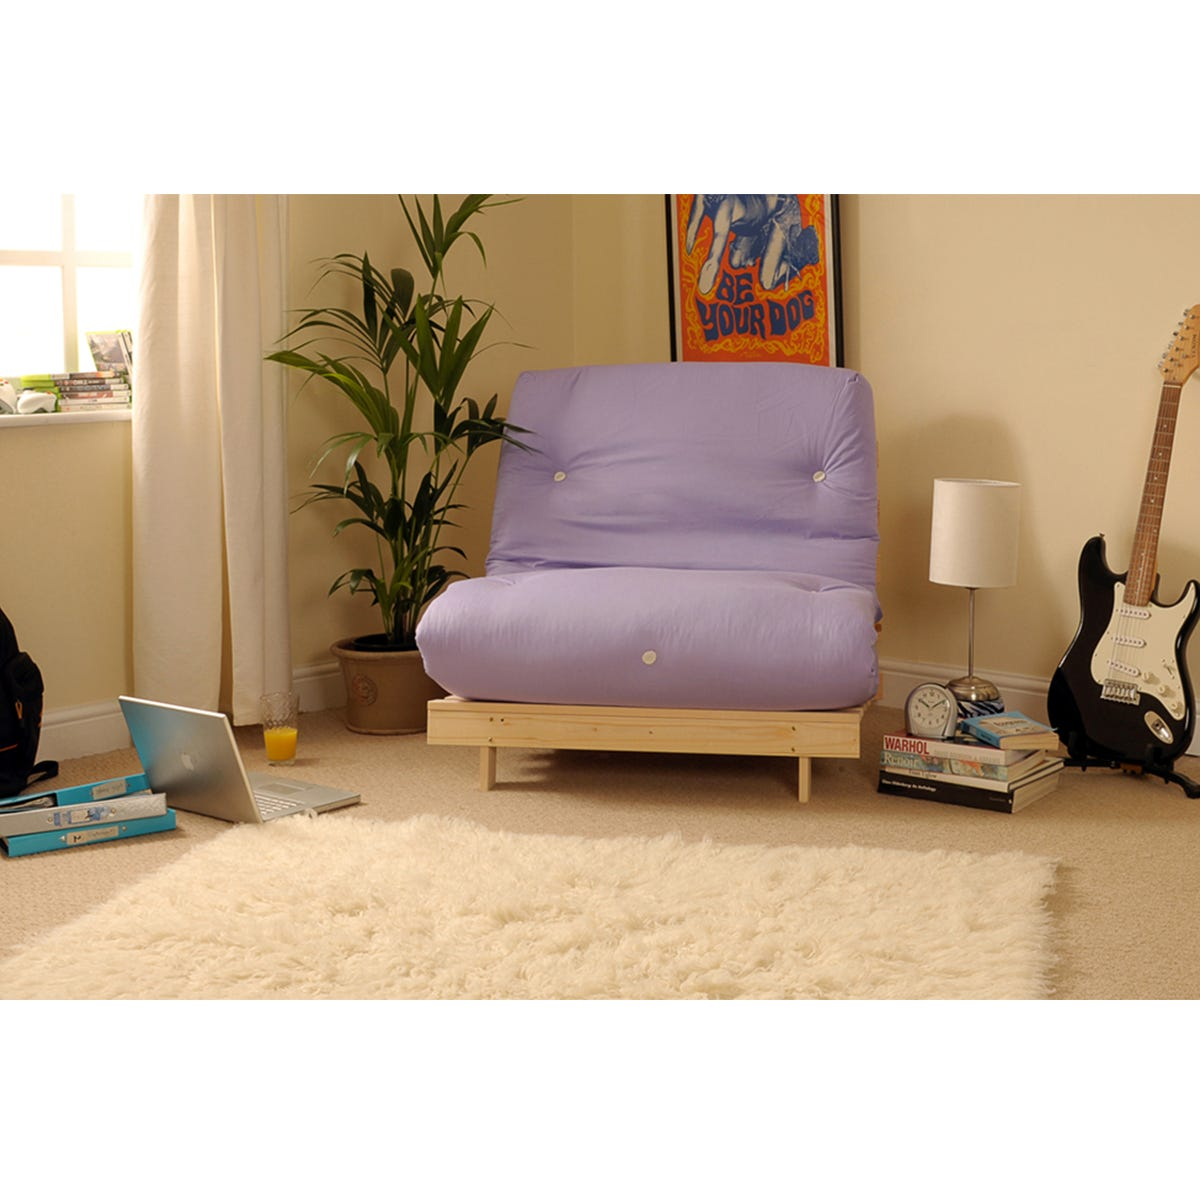 Albury Small Single Sofa Bed Set With Tufted Mattress - Lilac